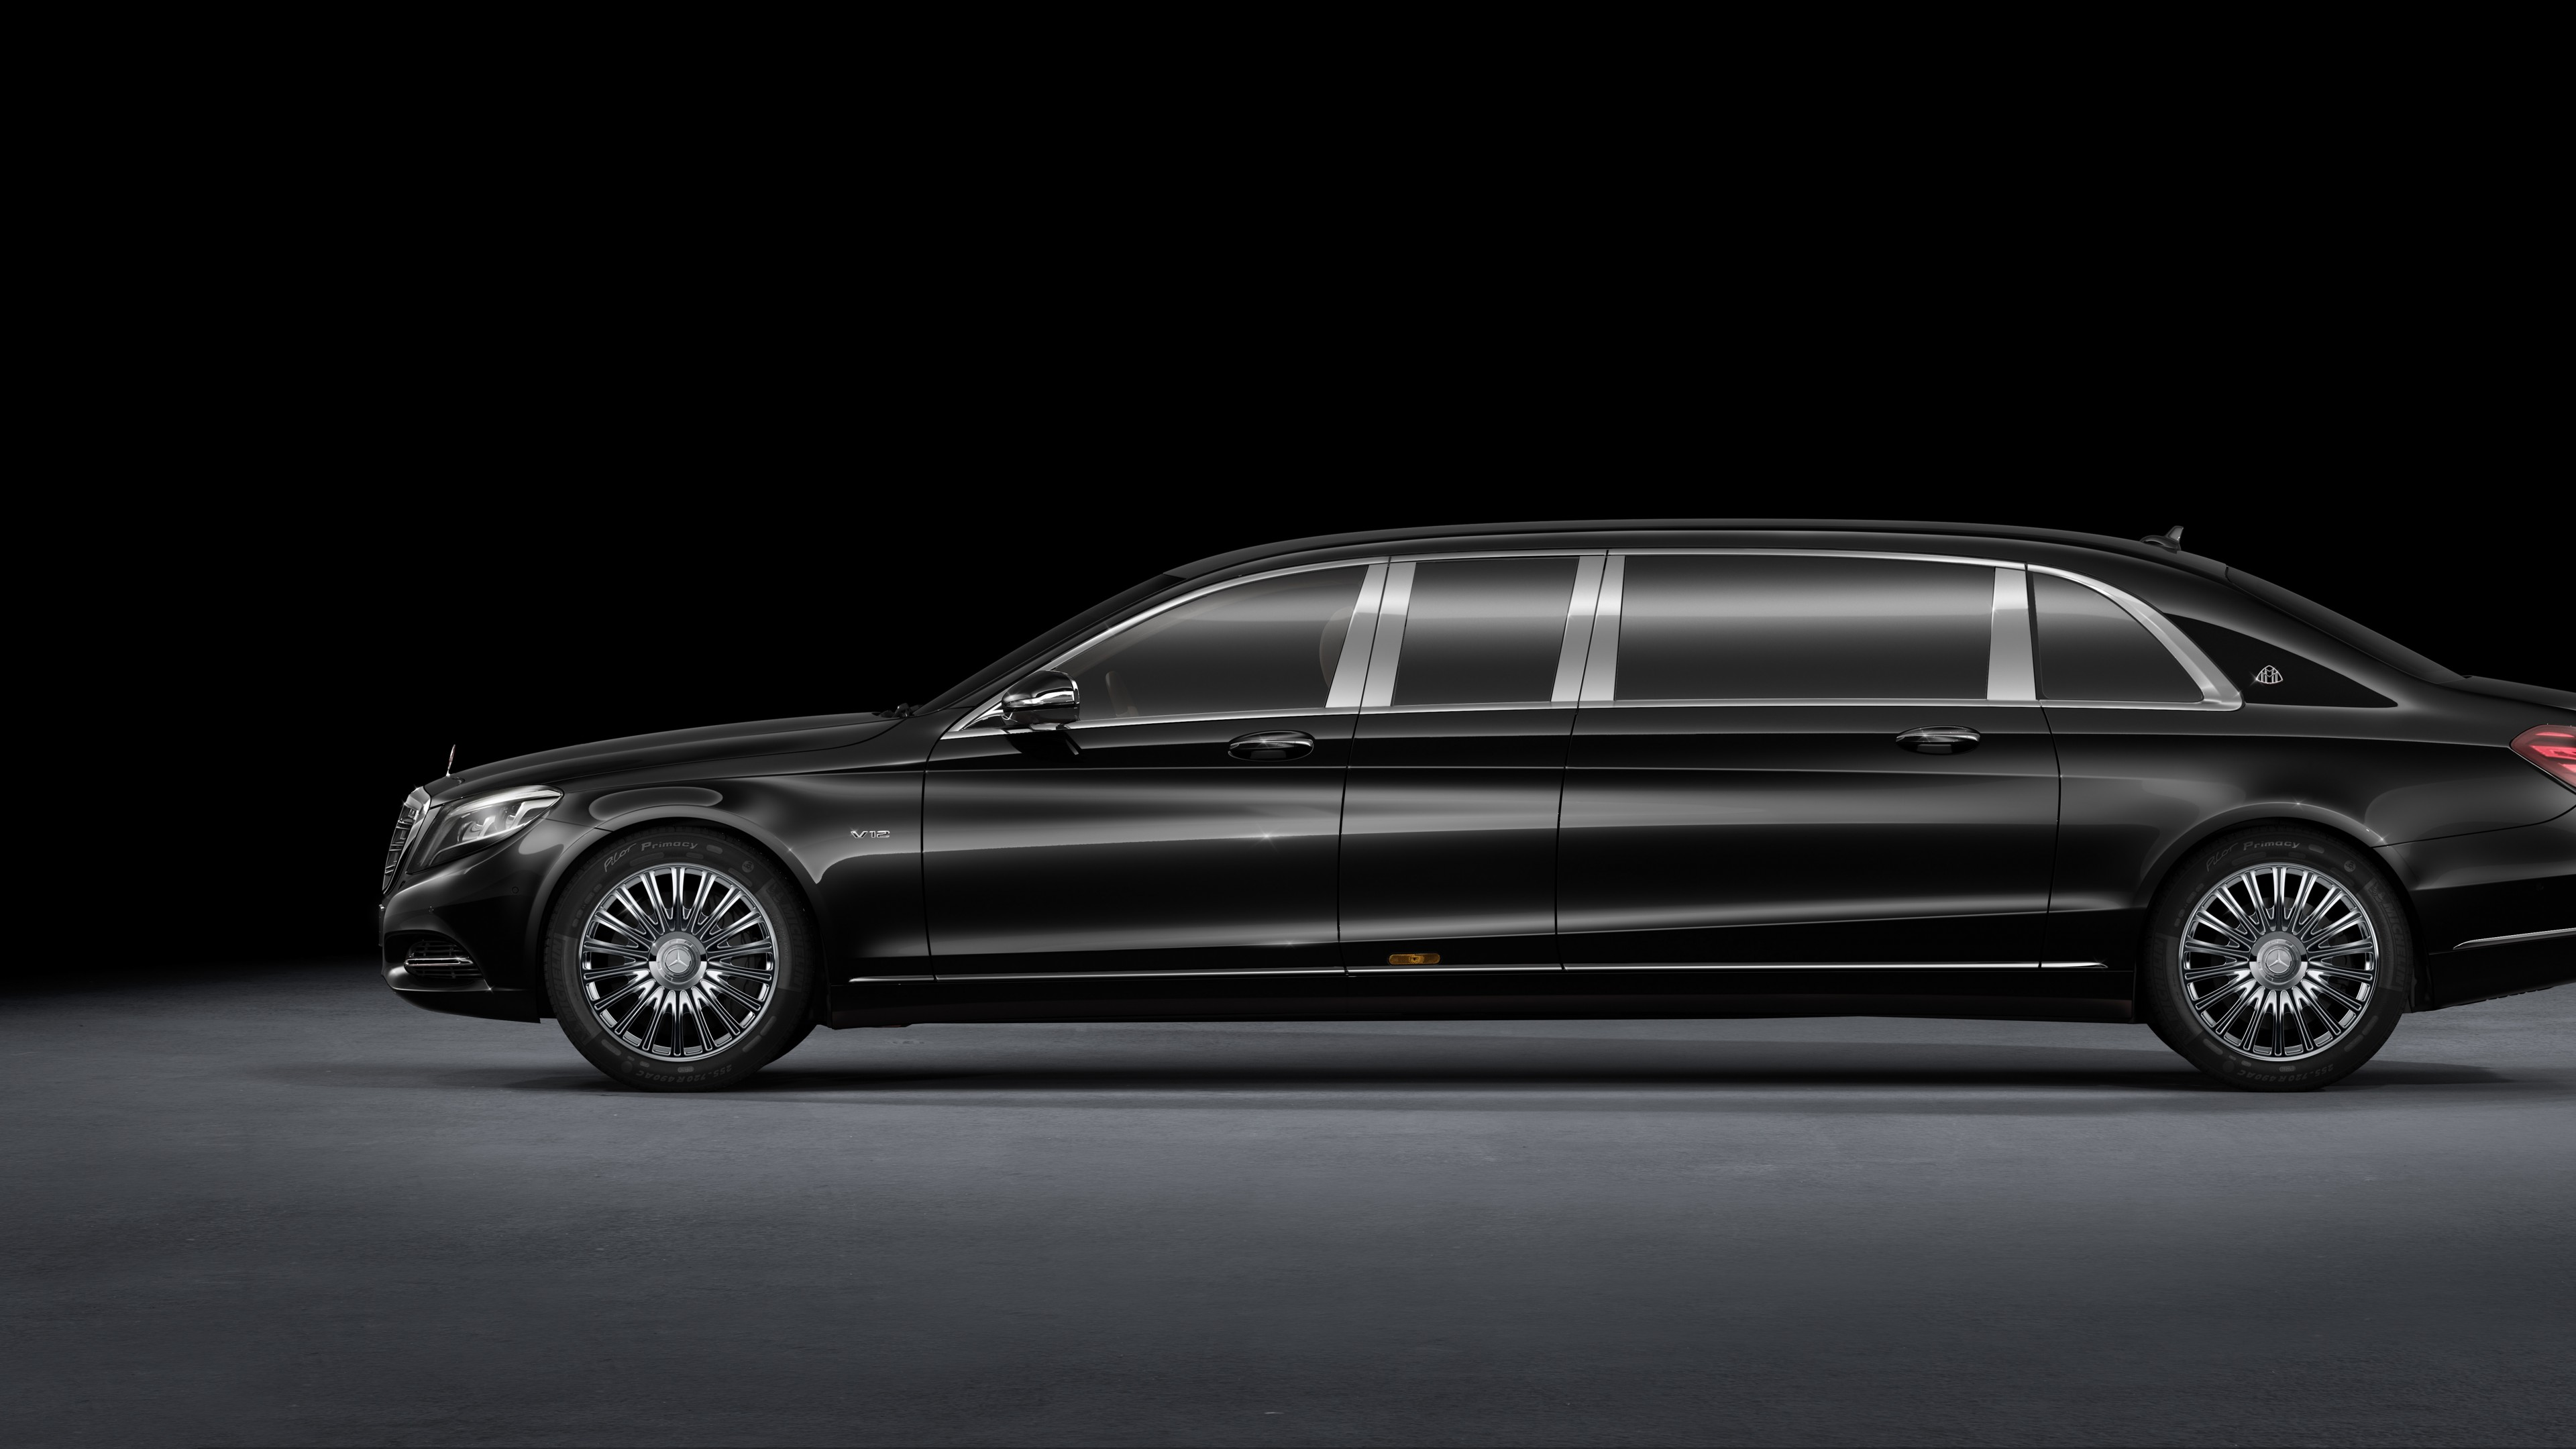 Wallpaper Mercedes Maybach S600 Pullman Sedan Grey